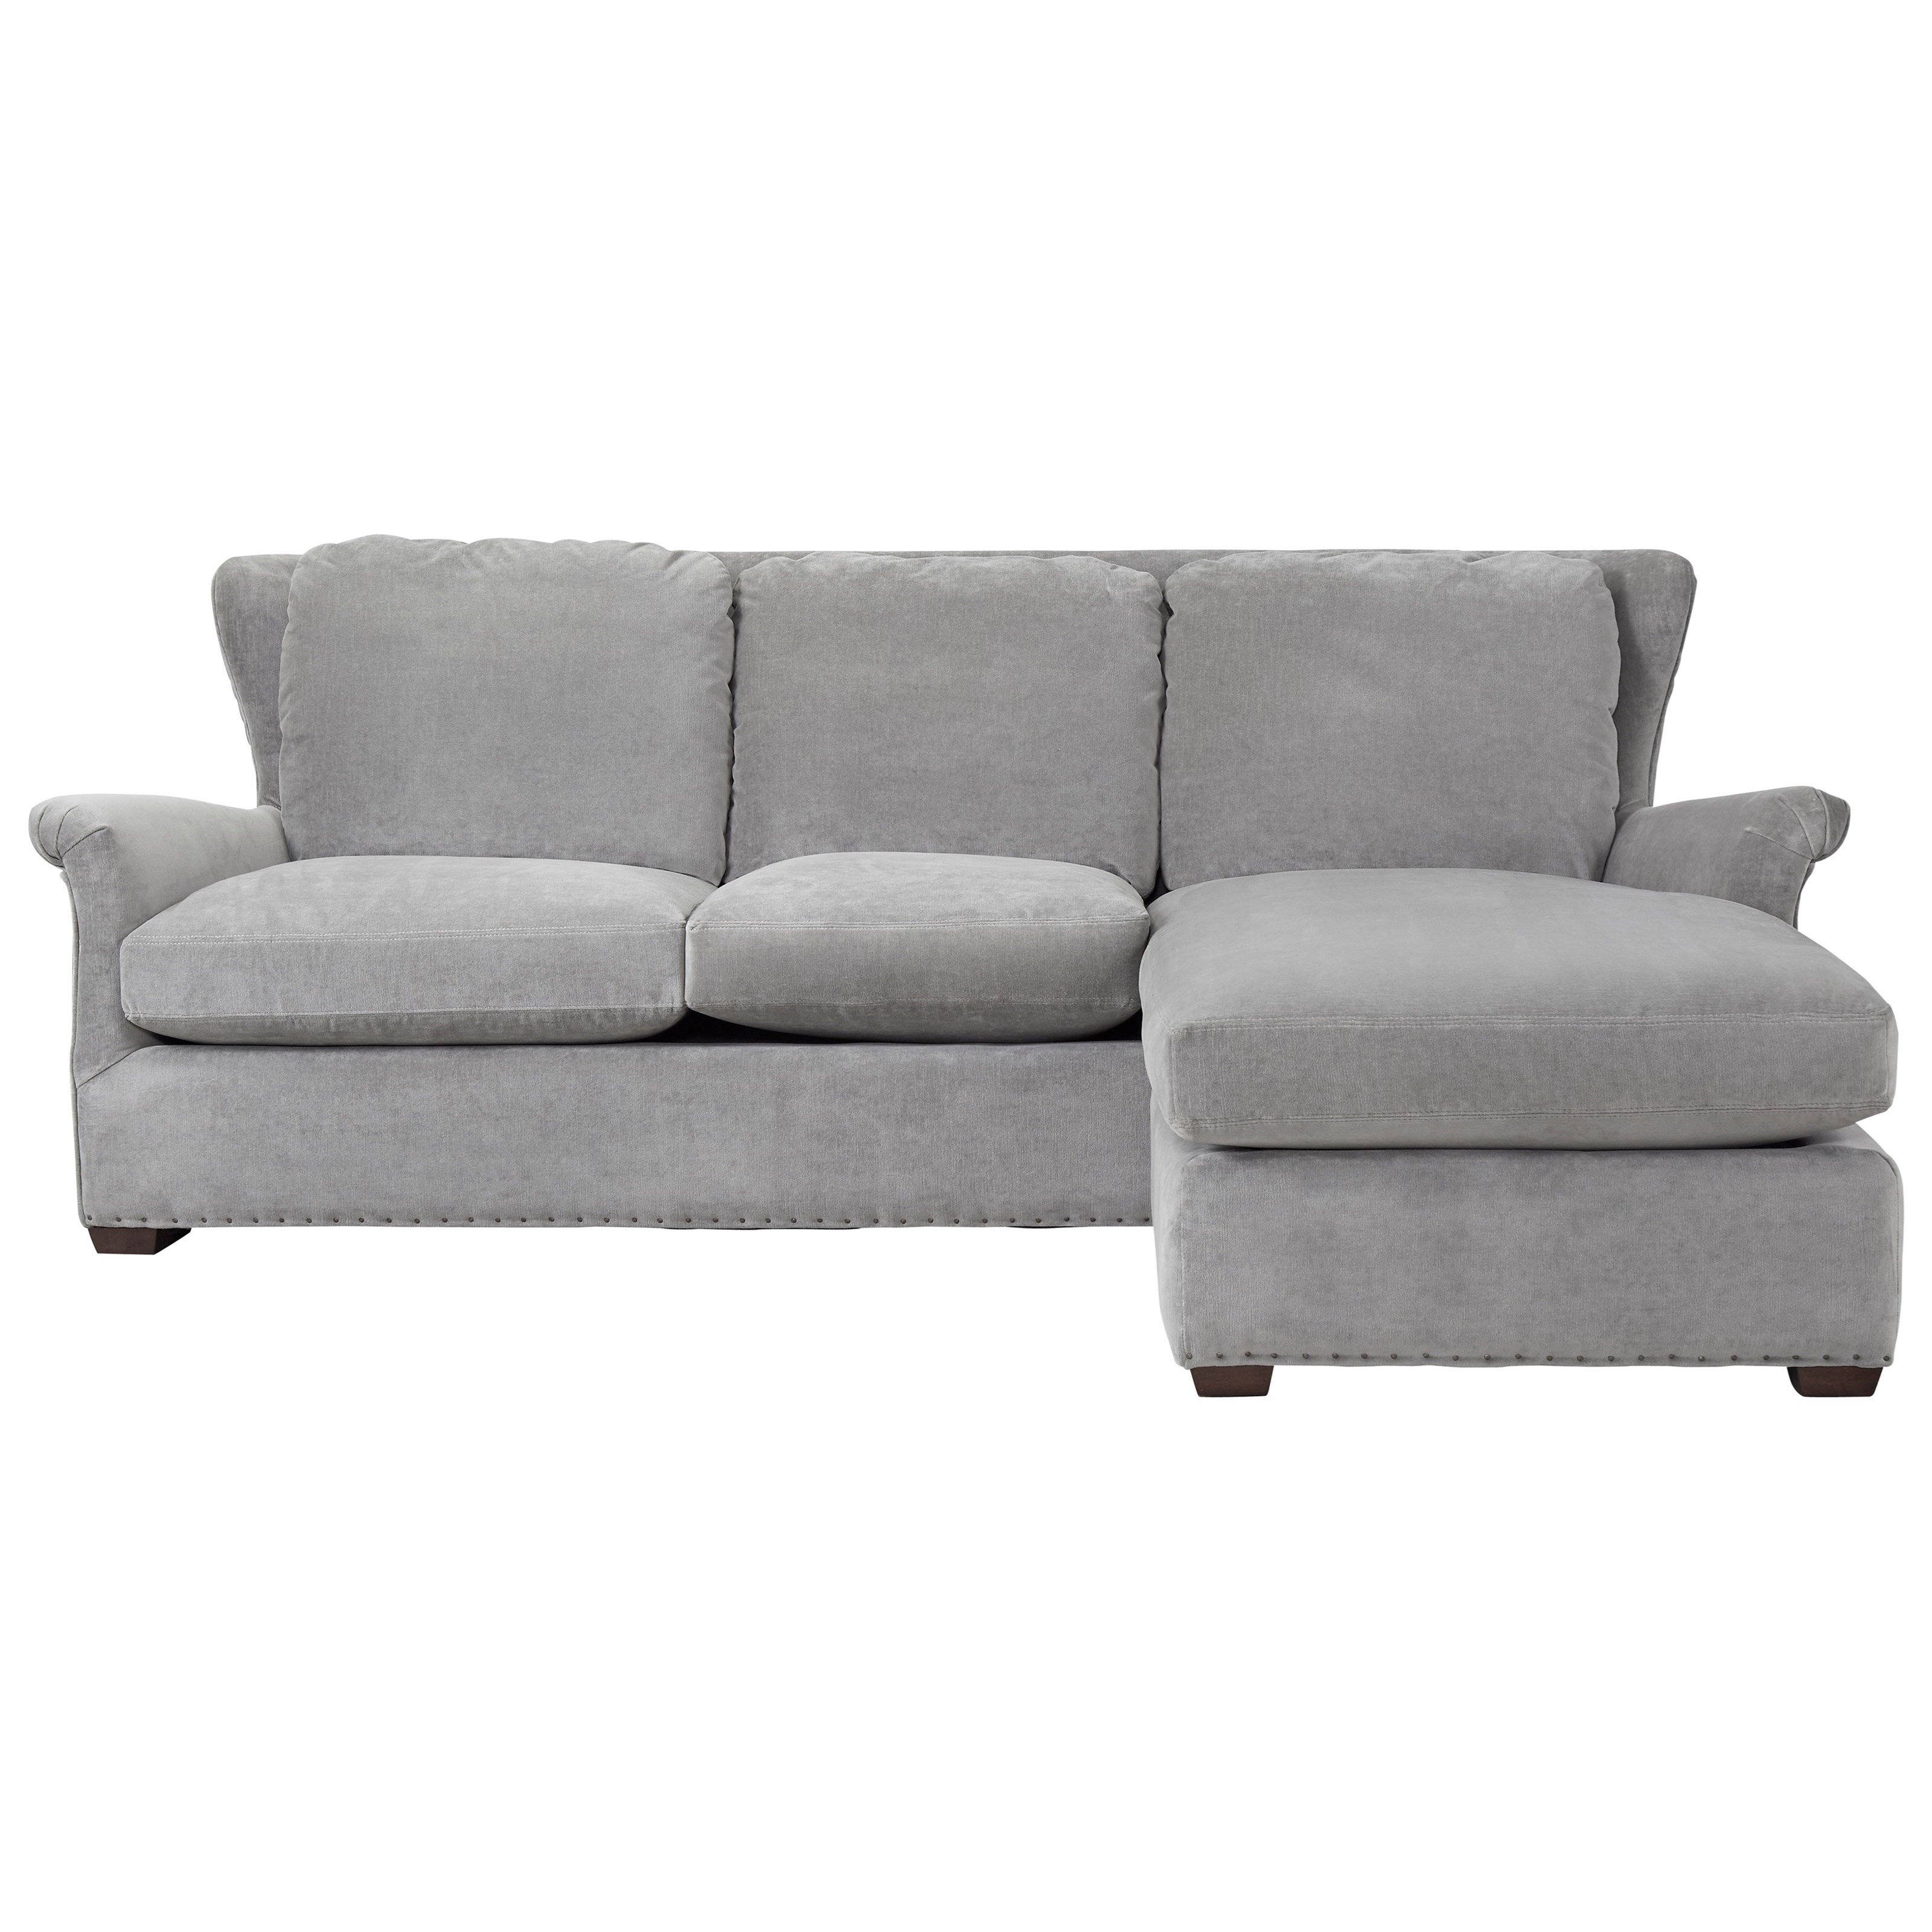 Haven Sofa Chaise with Ottoman     by Universal at Story & Lee Furniture